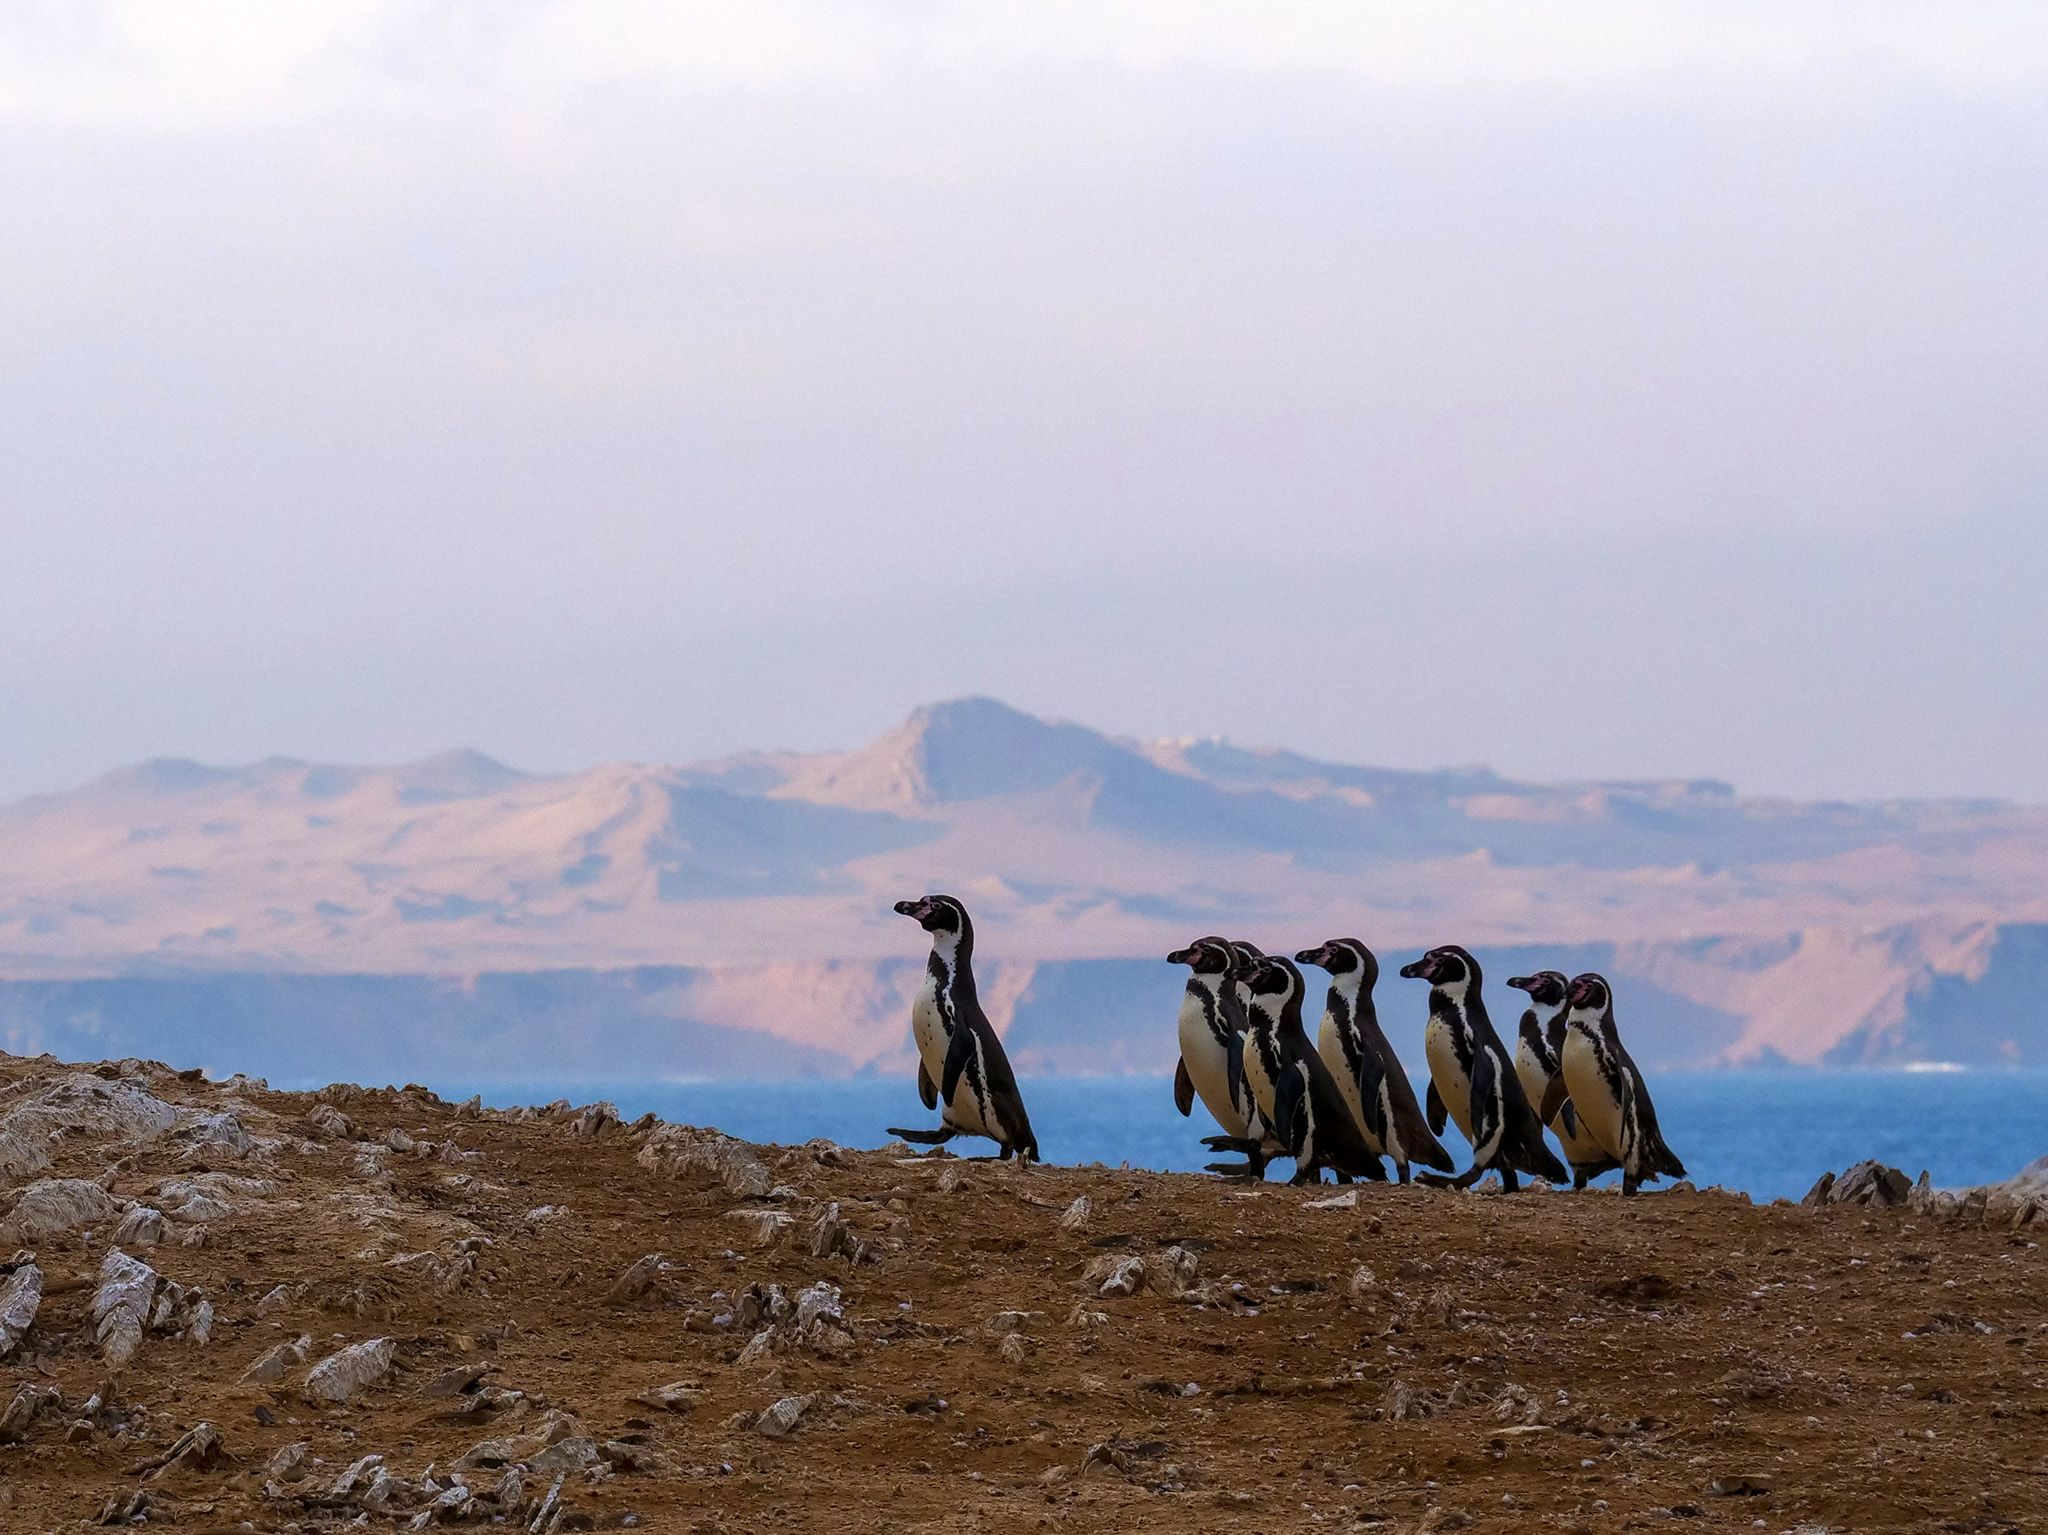 Punta San Juan, Peru:  Group of Humboldt penguins following leader across rocks. This image is... [Foto del giorno - December 2018]